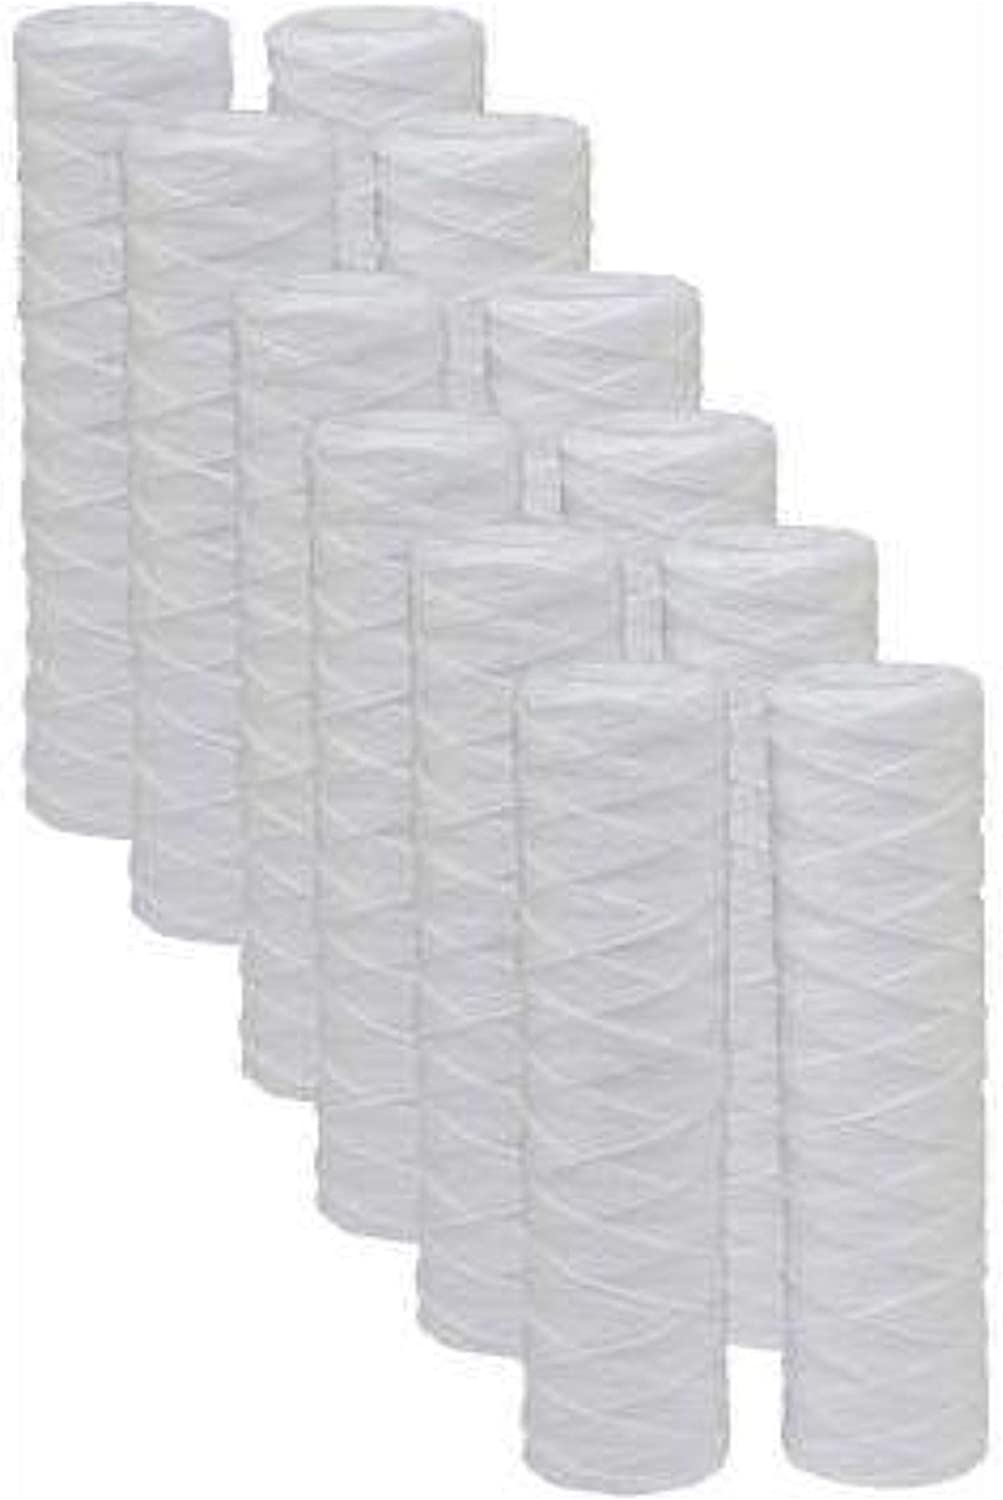 Kenmore Deluxe String Wound Sediment 38478 Compatible Filter Cartridges 2 Pack by CFS CFS-53